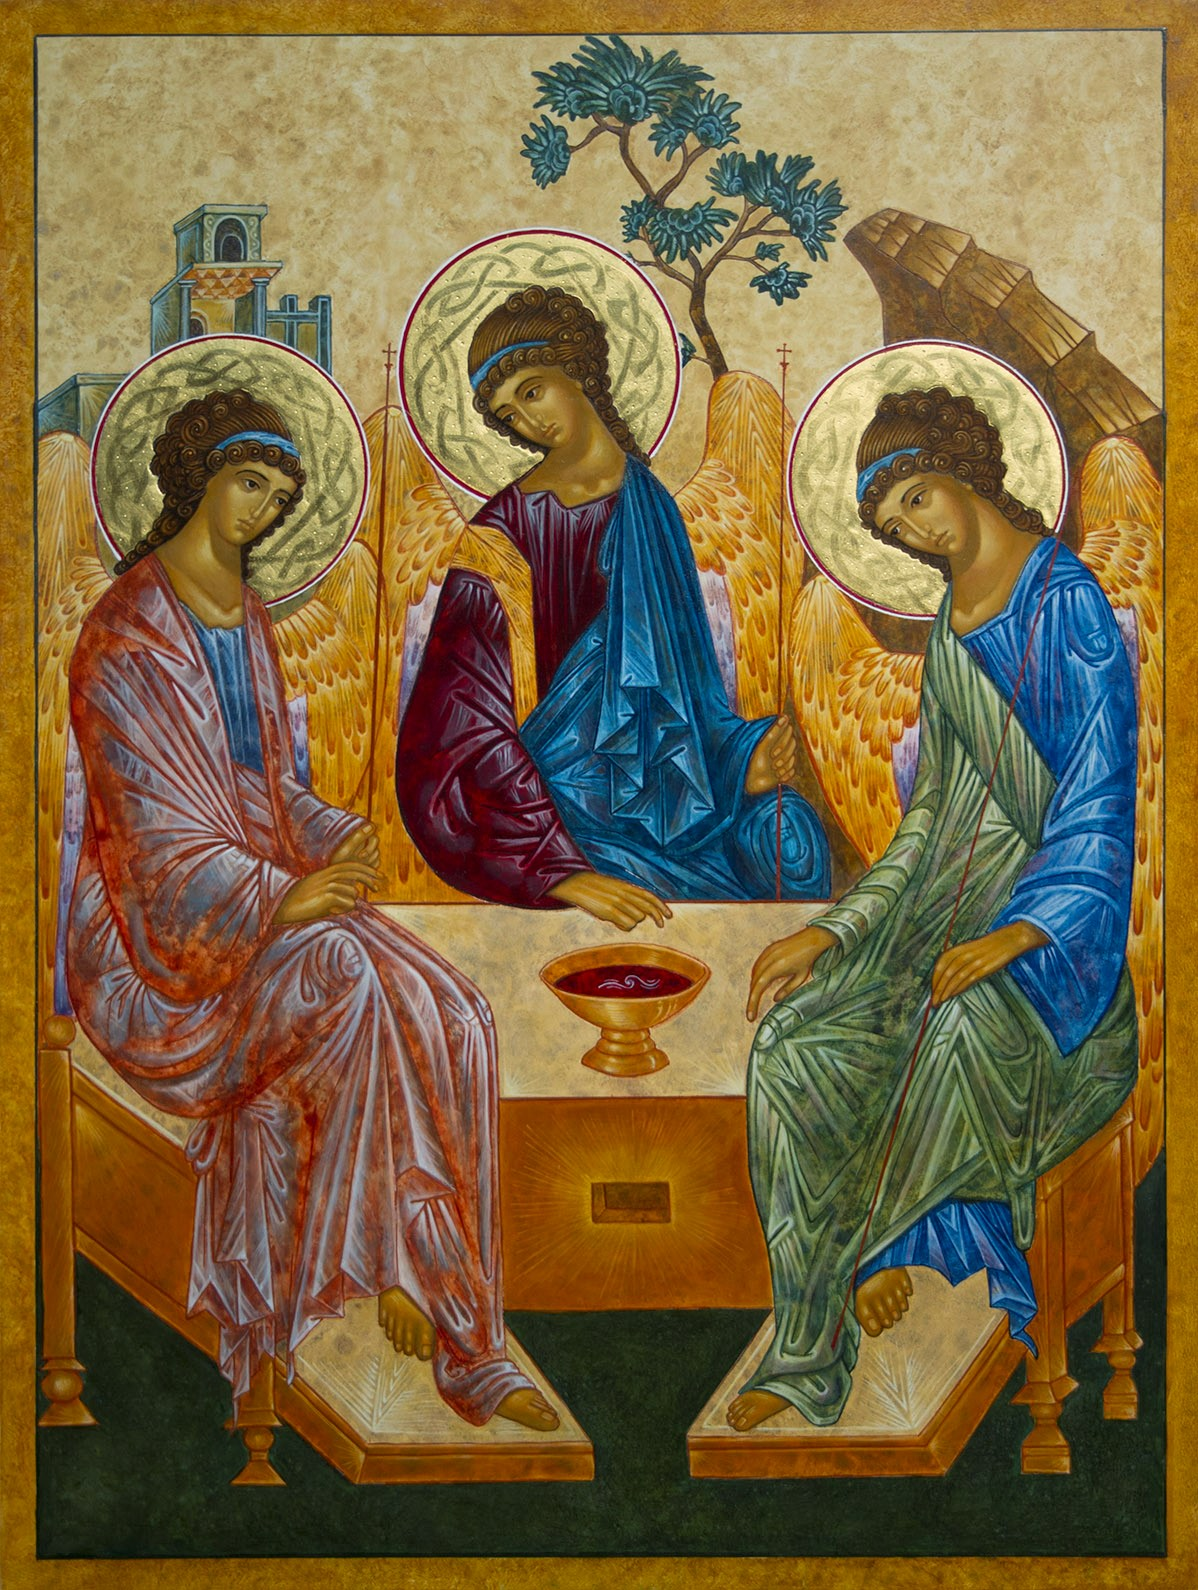 Rublev's classic icon of the trinity as three people sitting at a table.